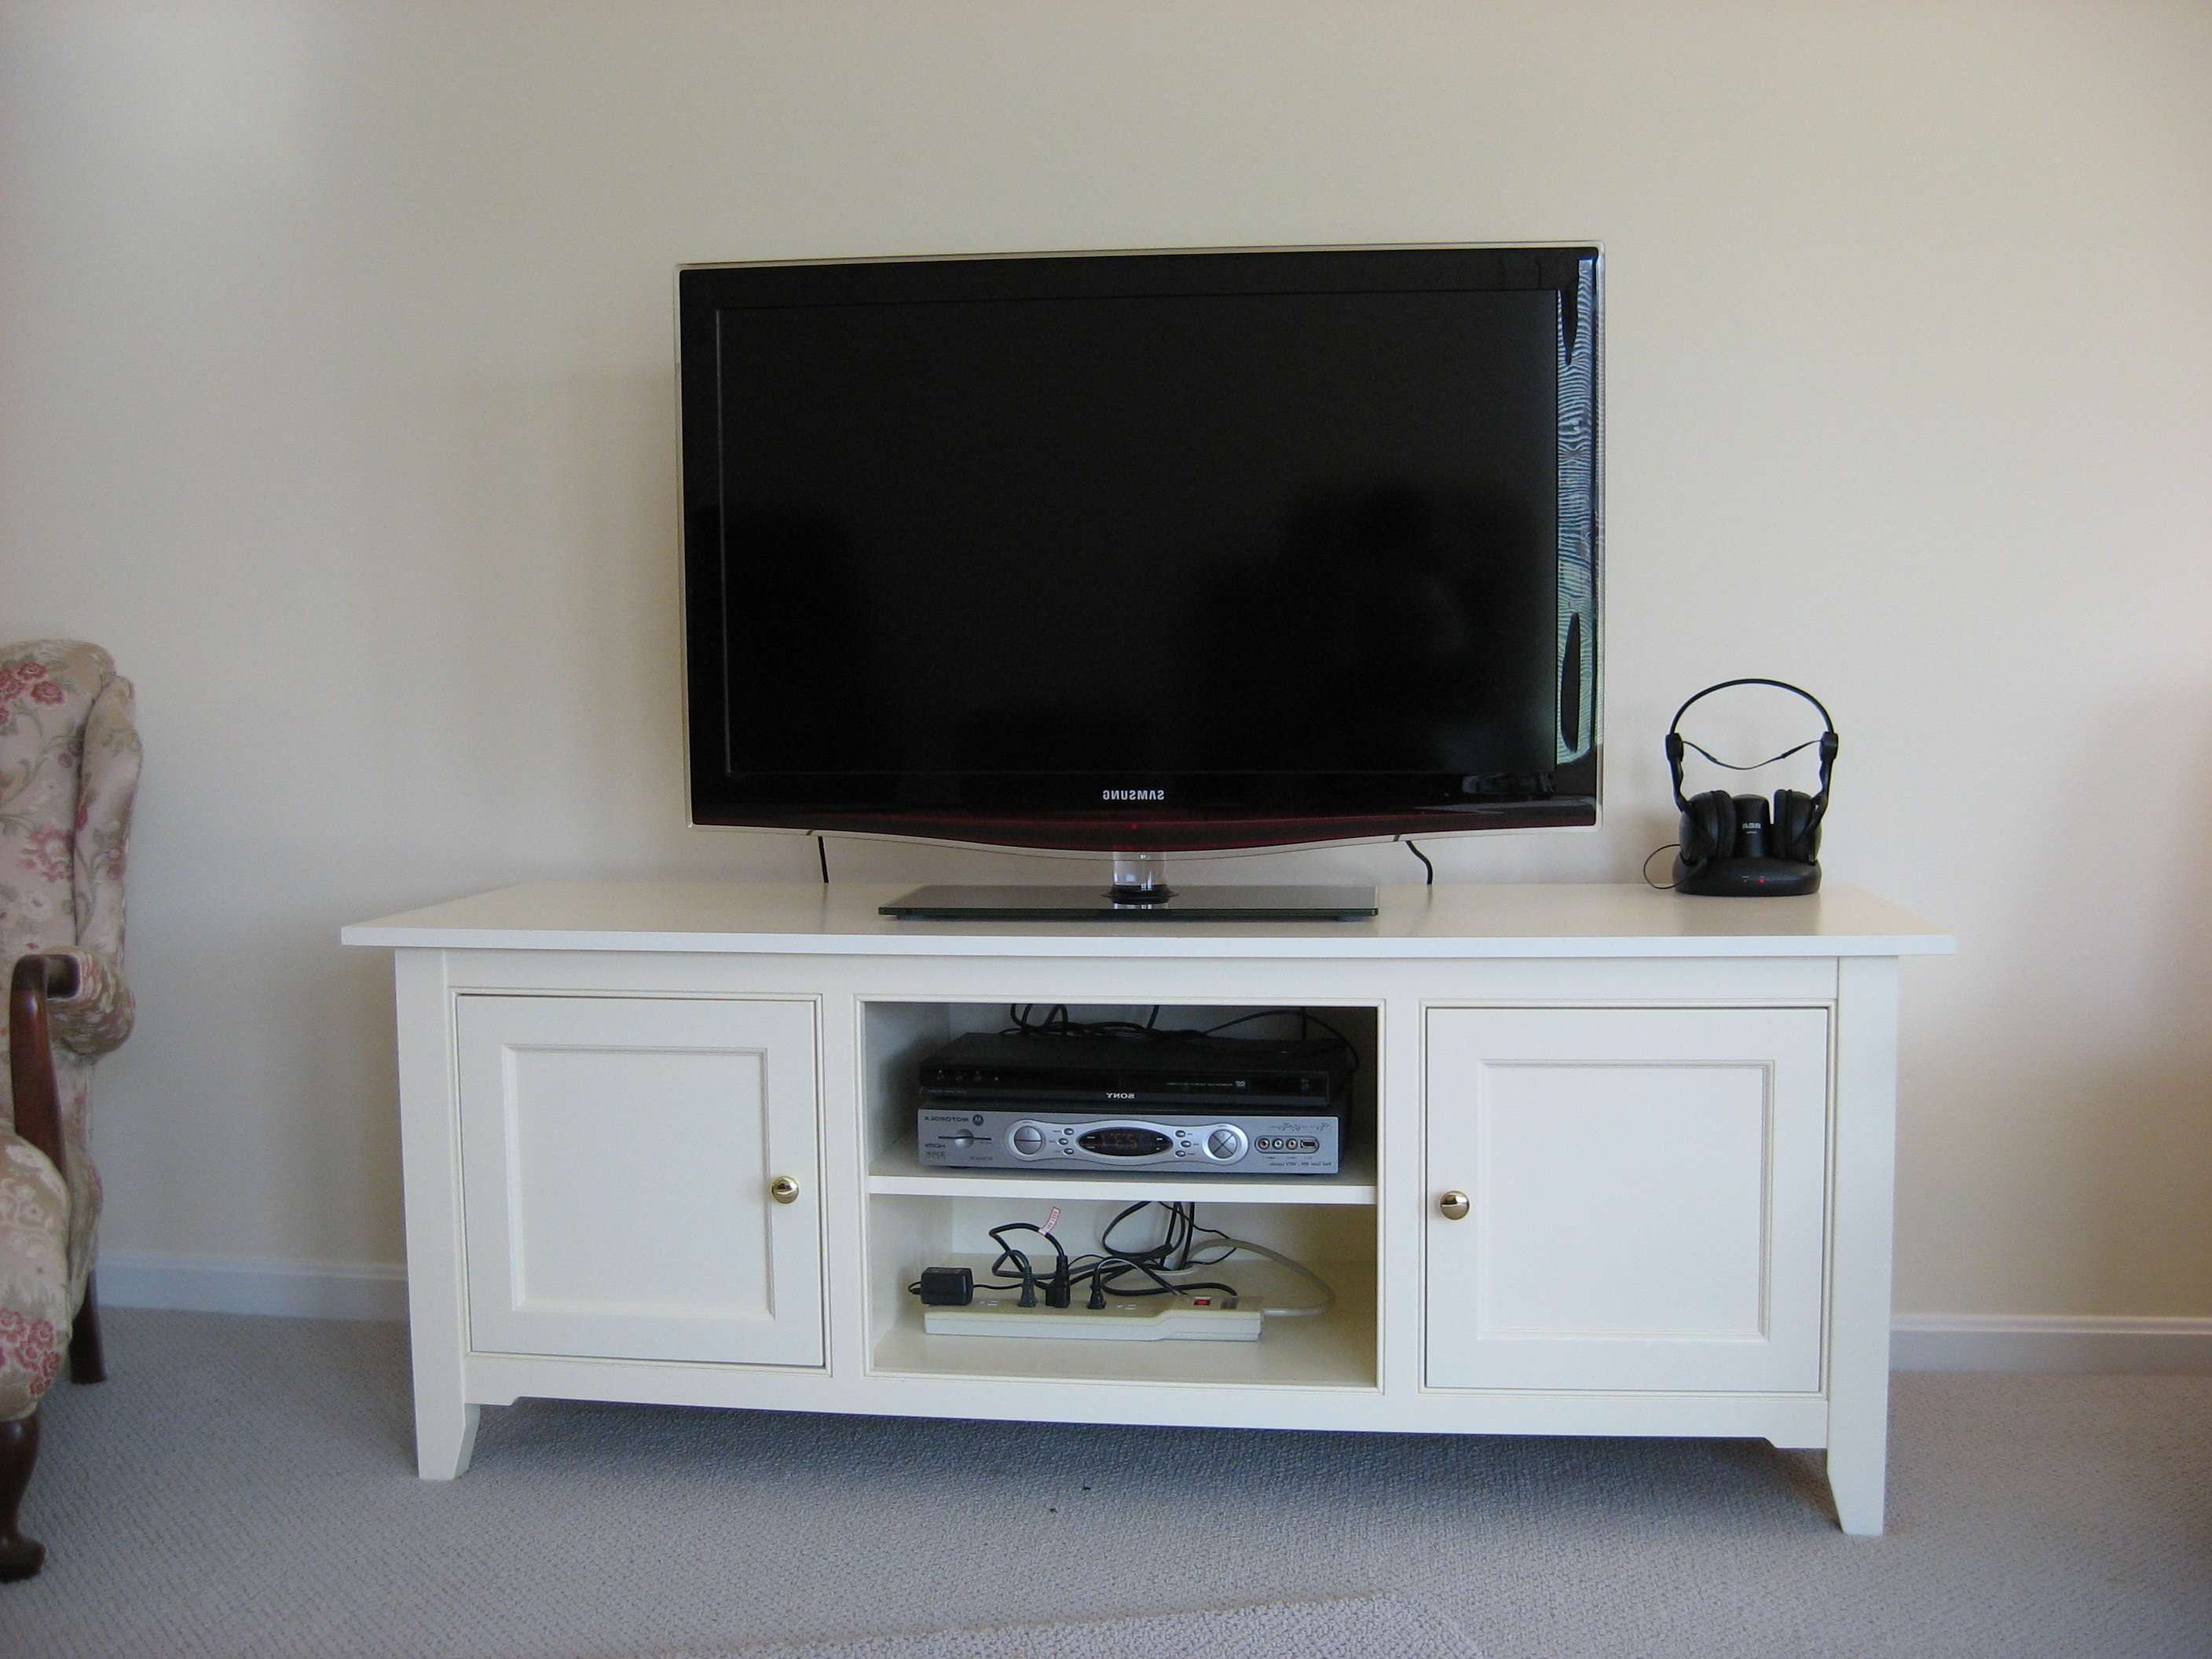 Cuisine: White Tv Stands For Flat Screens Distressed Broyhill Regarding White Tv Stands For Flat Screens (View 11 of 20)